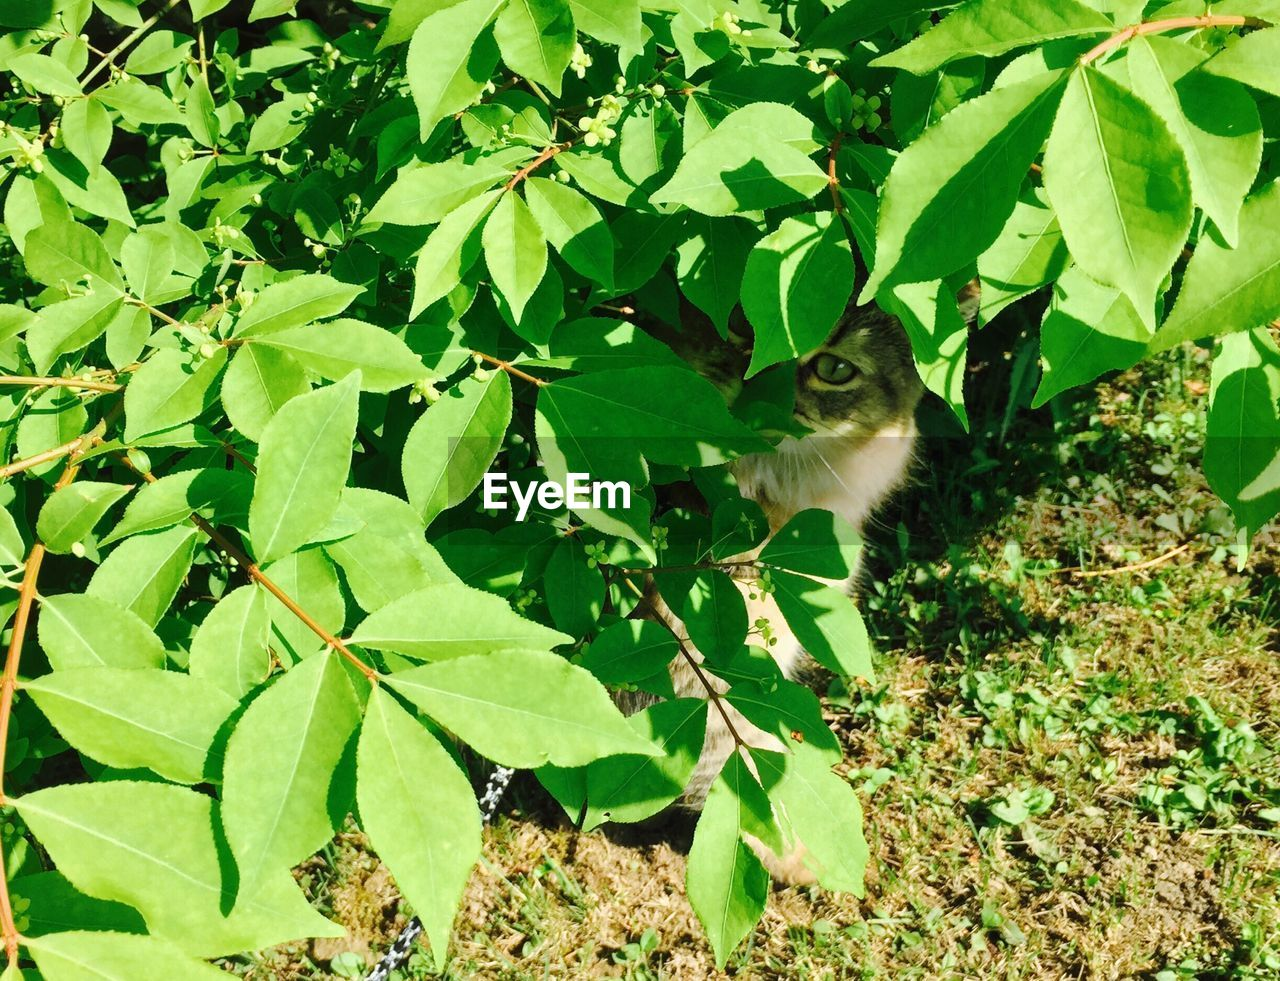 High angle view of cat hiding in plants